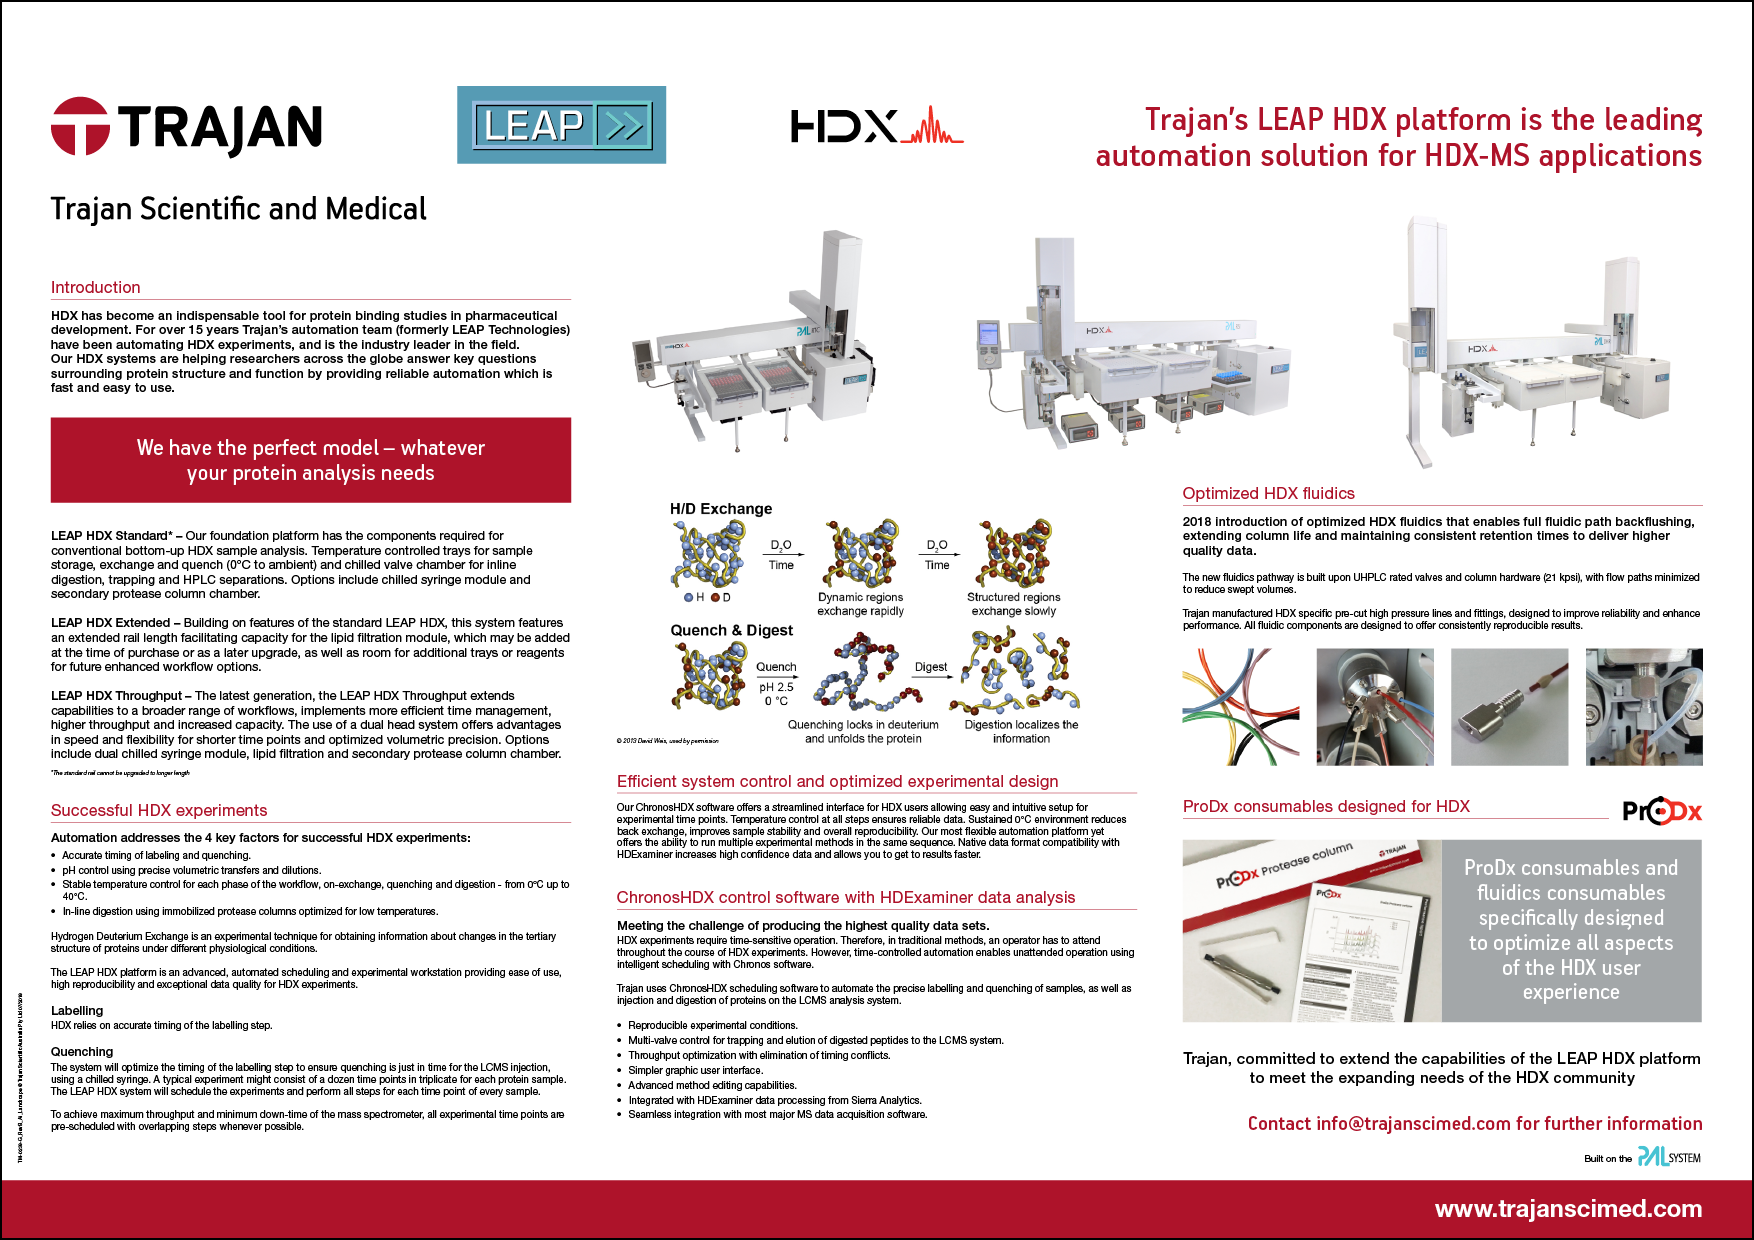 Automation consumables - Trajan Scientific and Medical